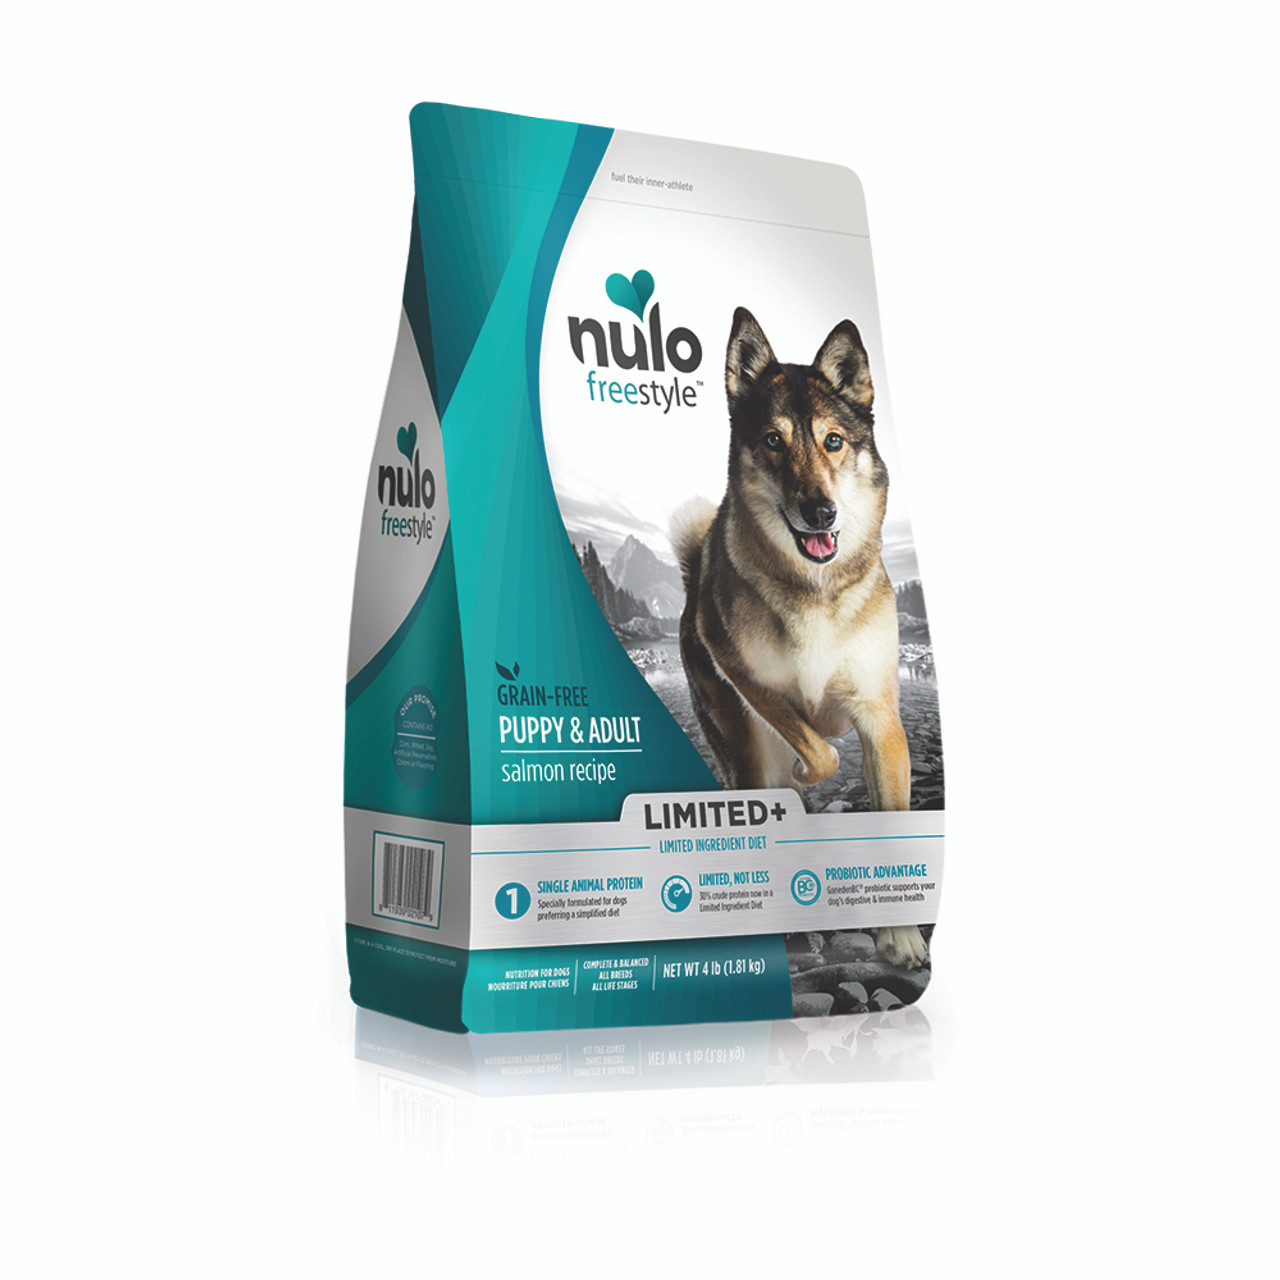 Nulo FreeStyle Limited+ Puppy & Adult Salmon Recipe Dry Dog Food